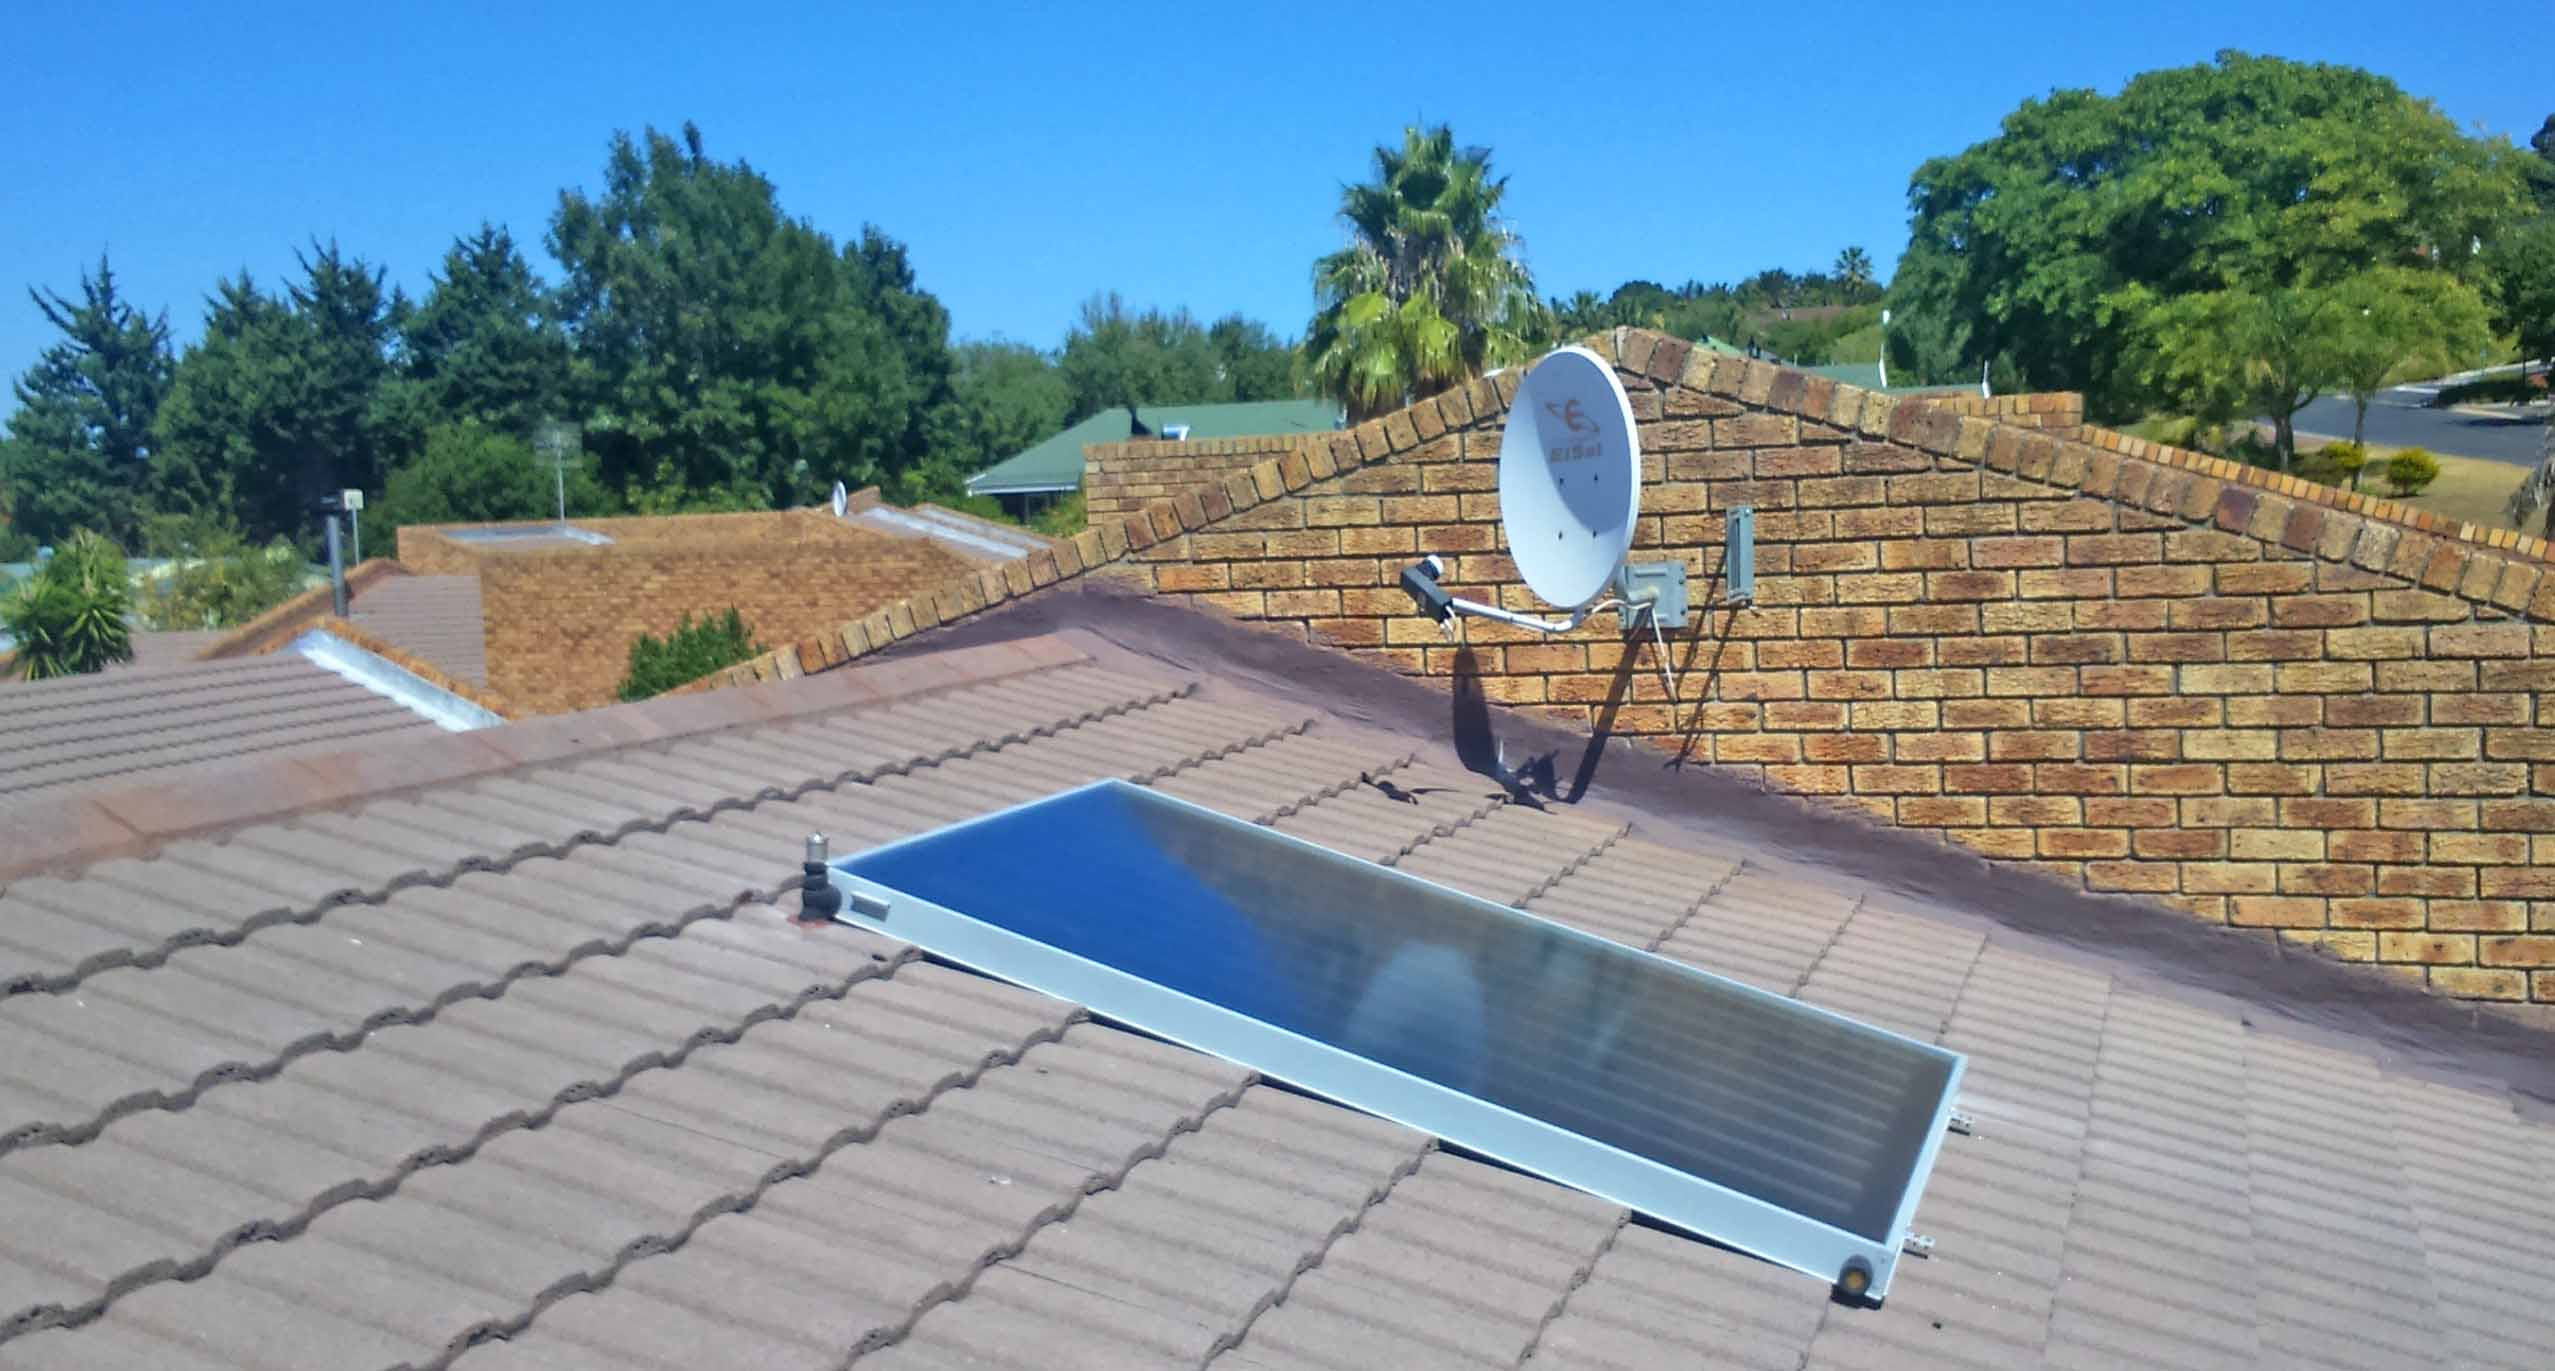 Retrofit electrical Kwikot geyser with solar